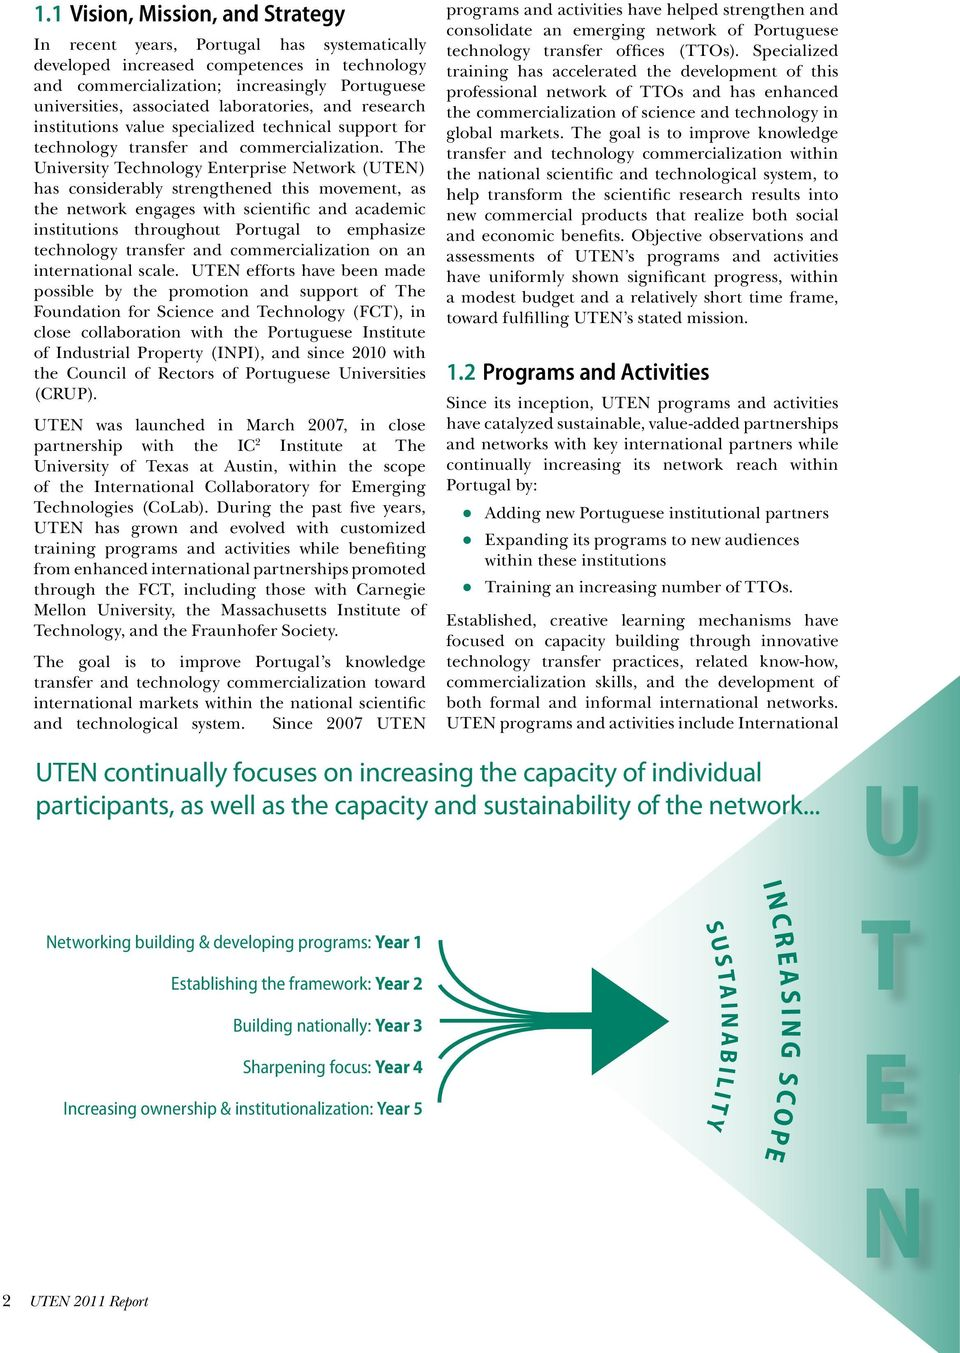 The University Technology Enterprise Network (UTEN) has considerably strengthened this movement, as the network engages with scientific and academic institutions throughout Portugal to emphasize